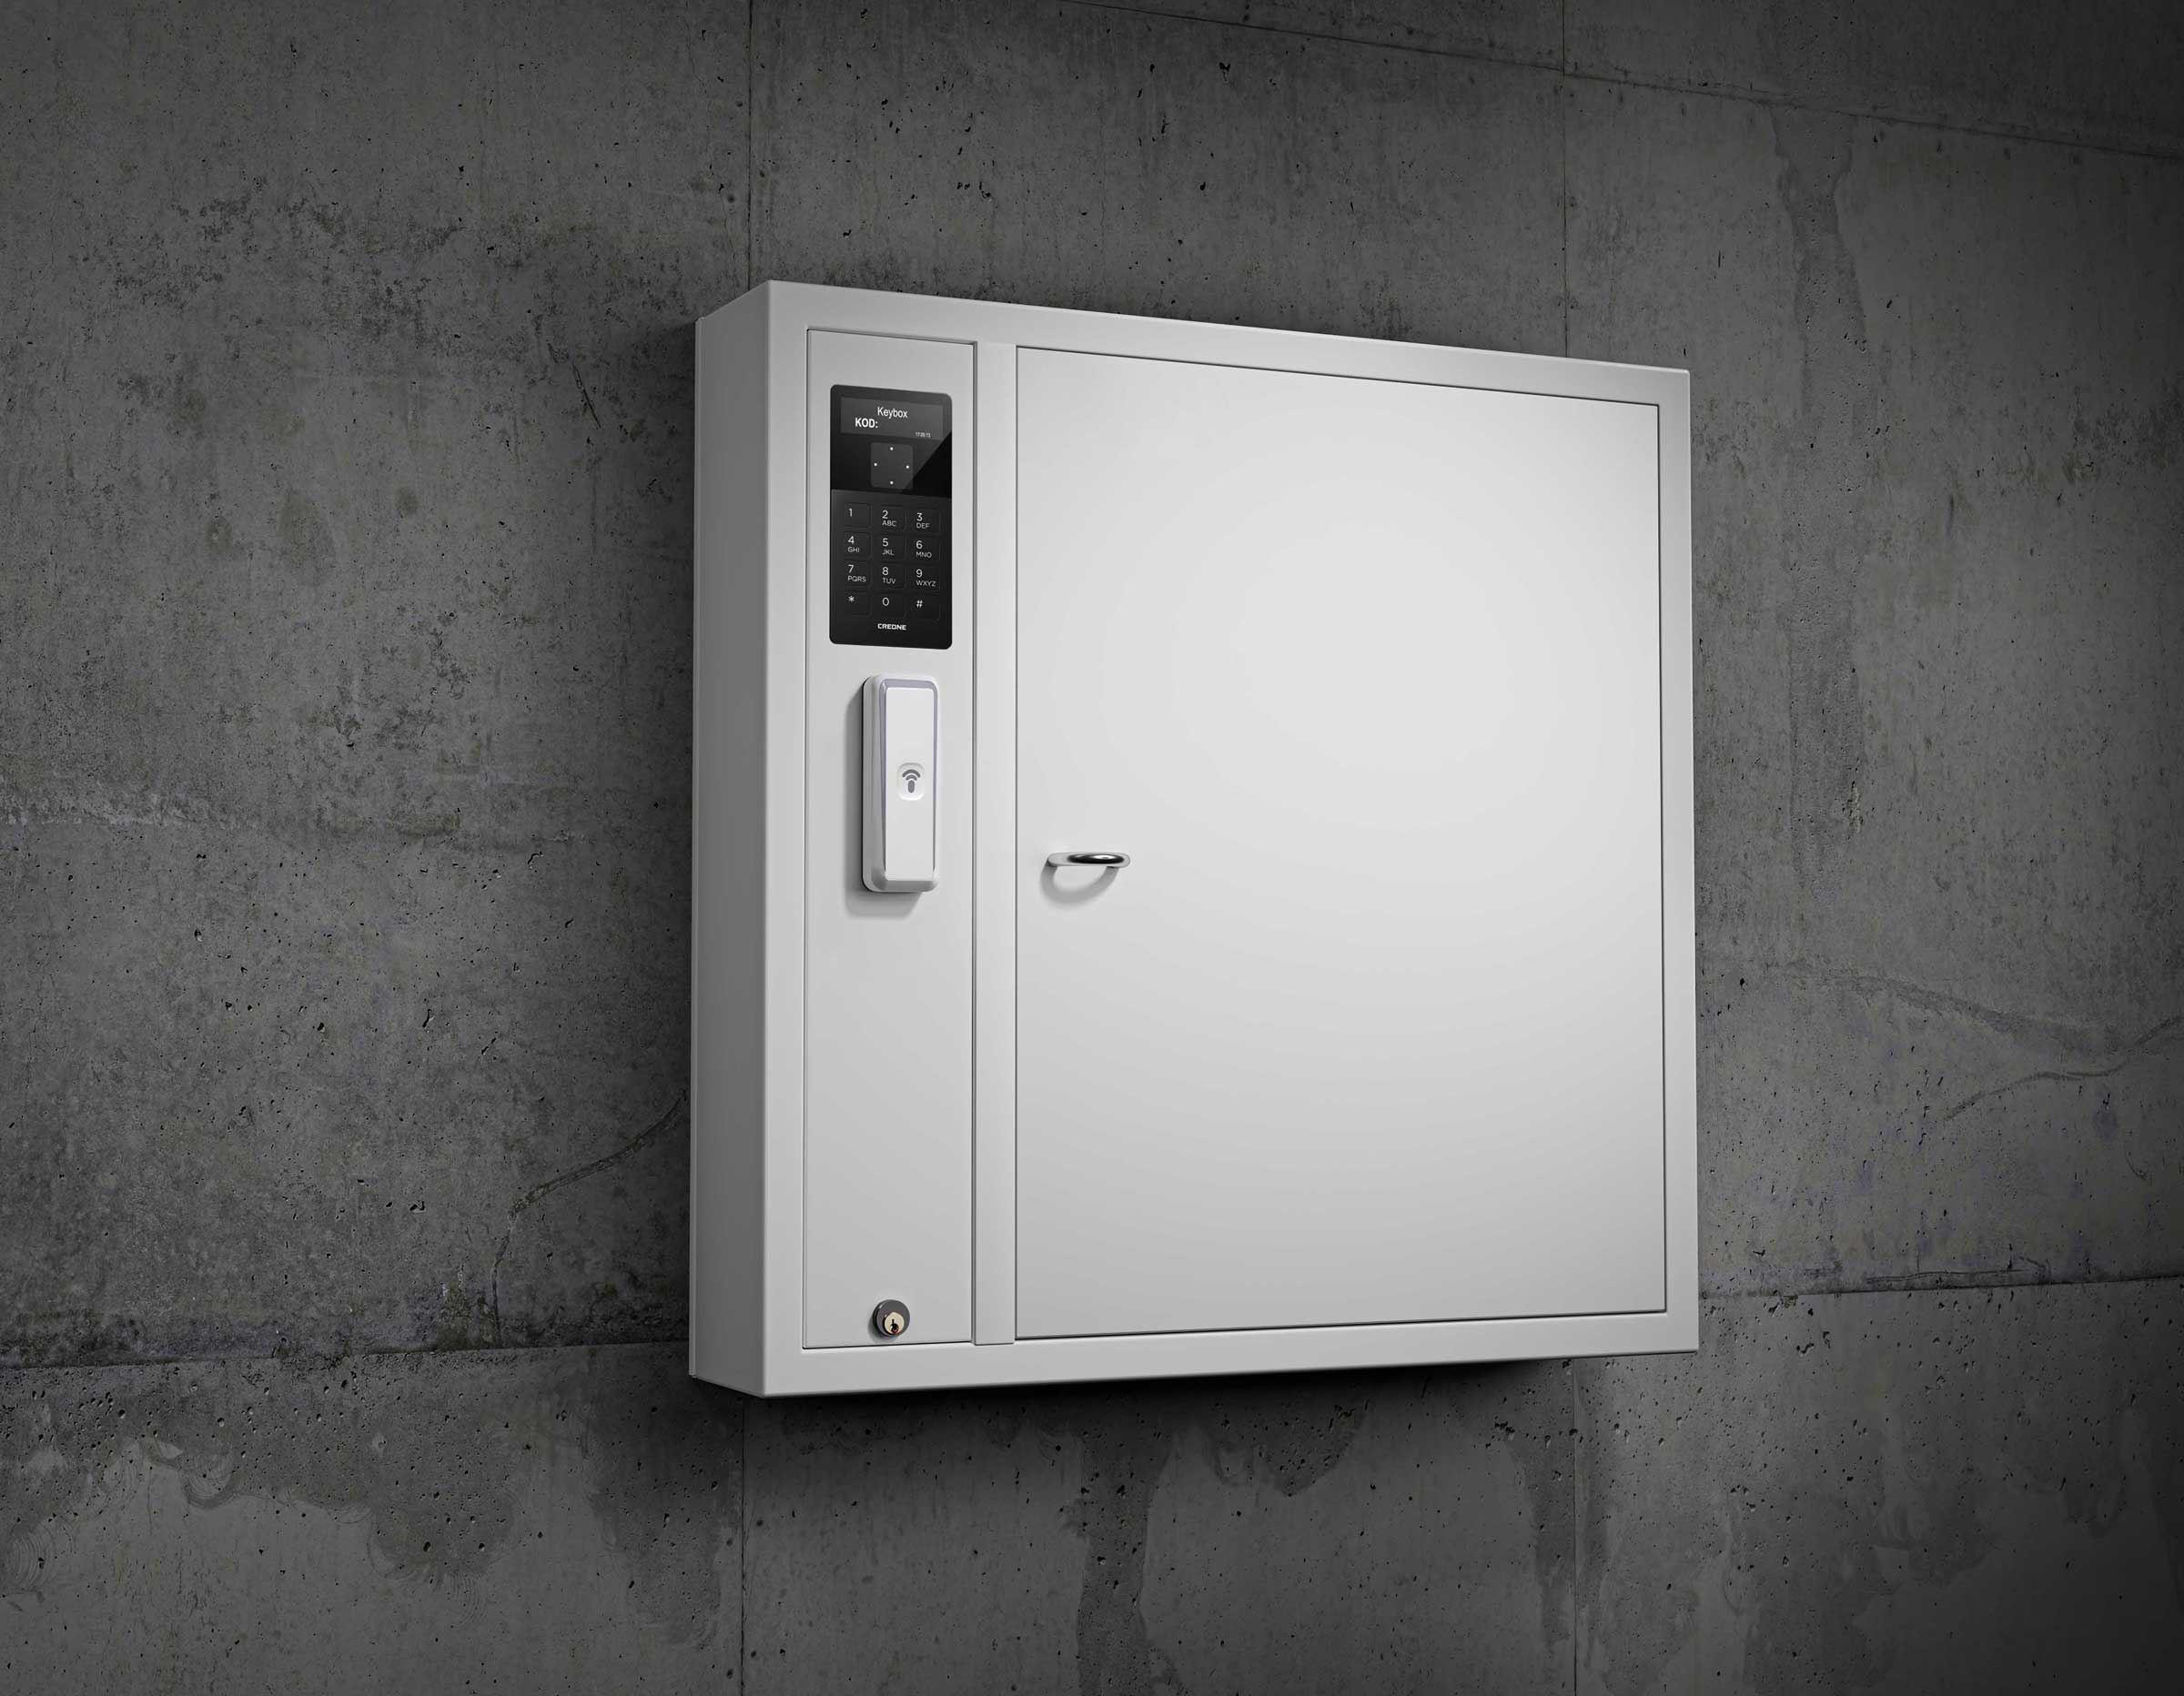 9500 key cabinet in the KeyControl series. Key management system mounted on a wall in office premises.